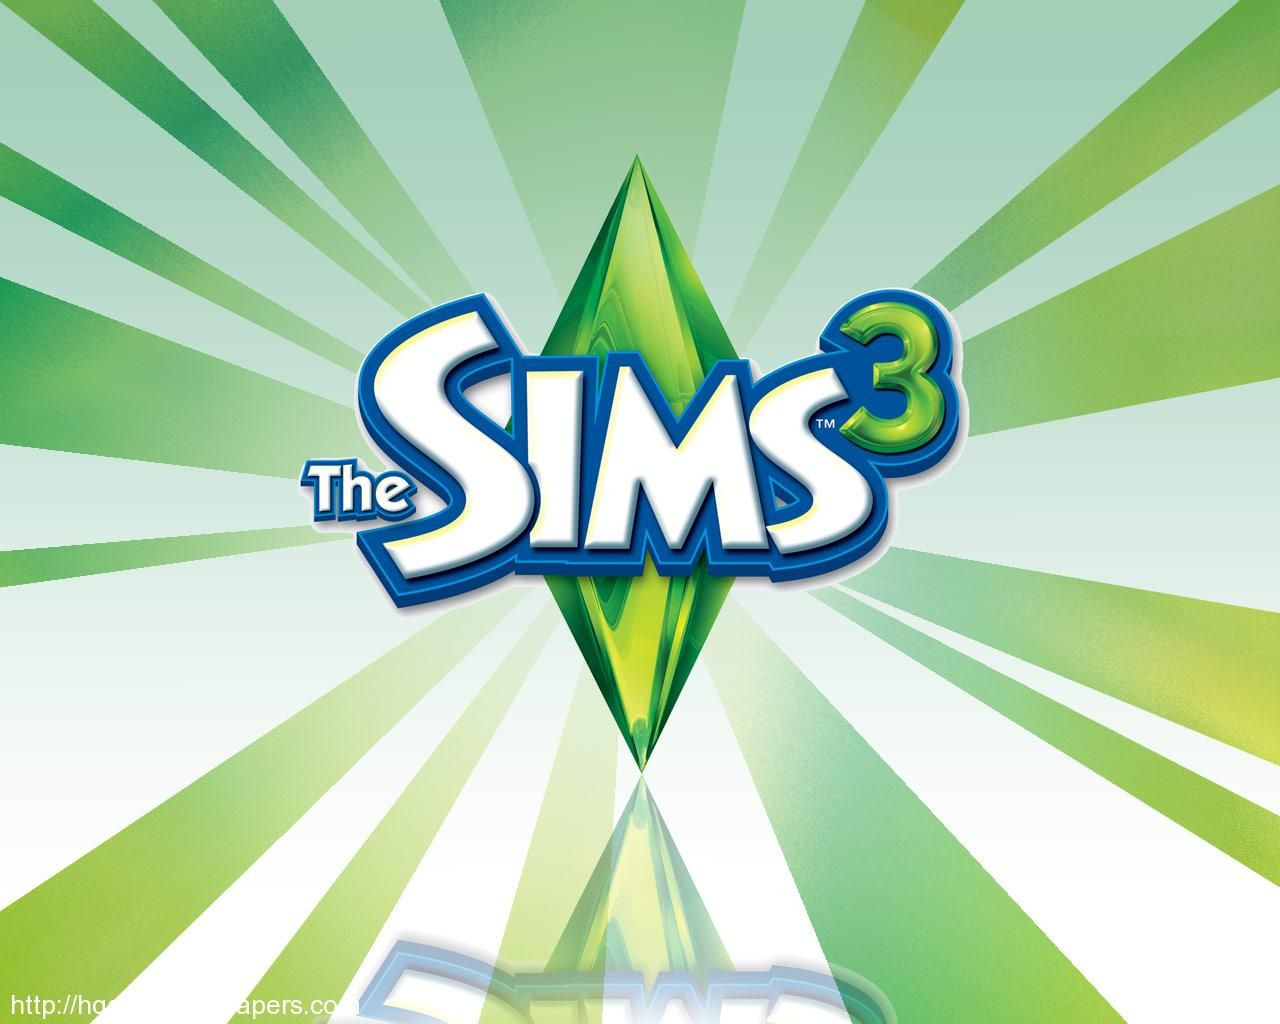 The Sims 3 Free Download With All Expansion For Pc Sims 3 Games Sims Sims 3